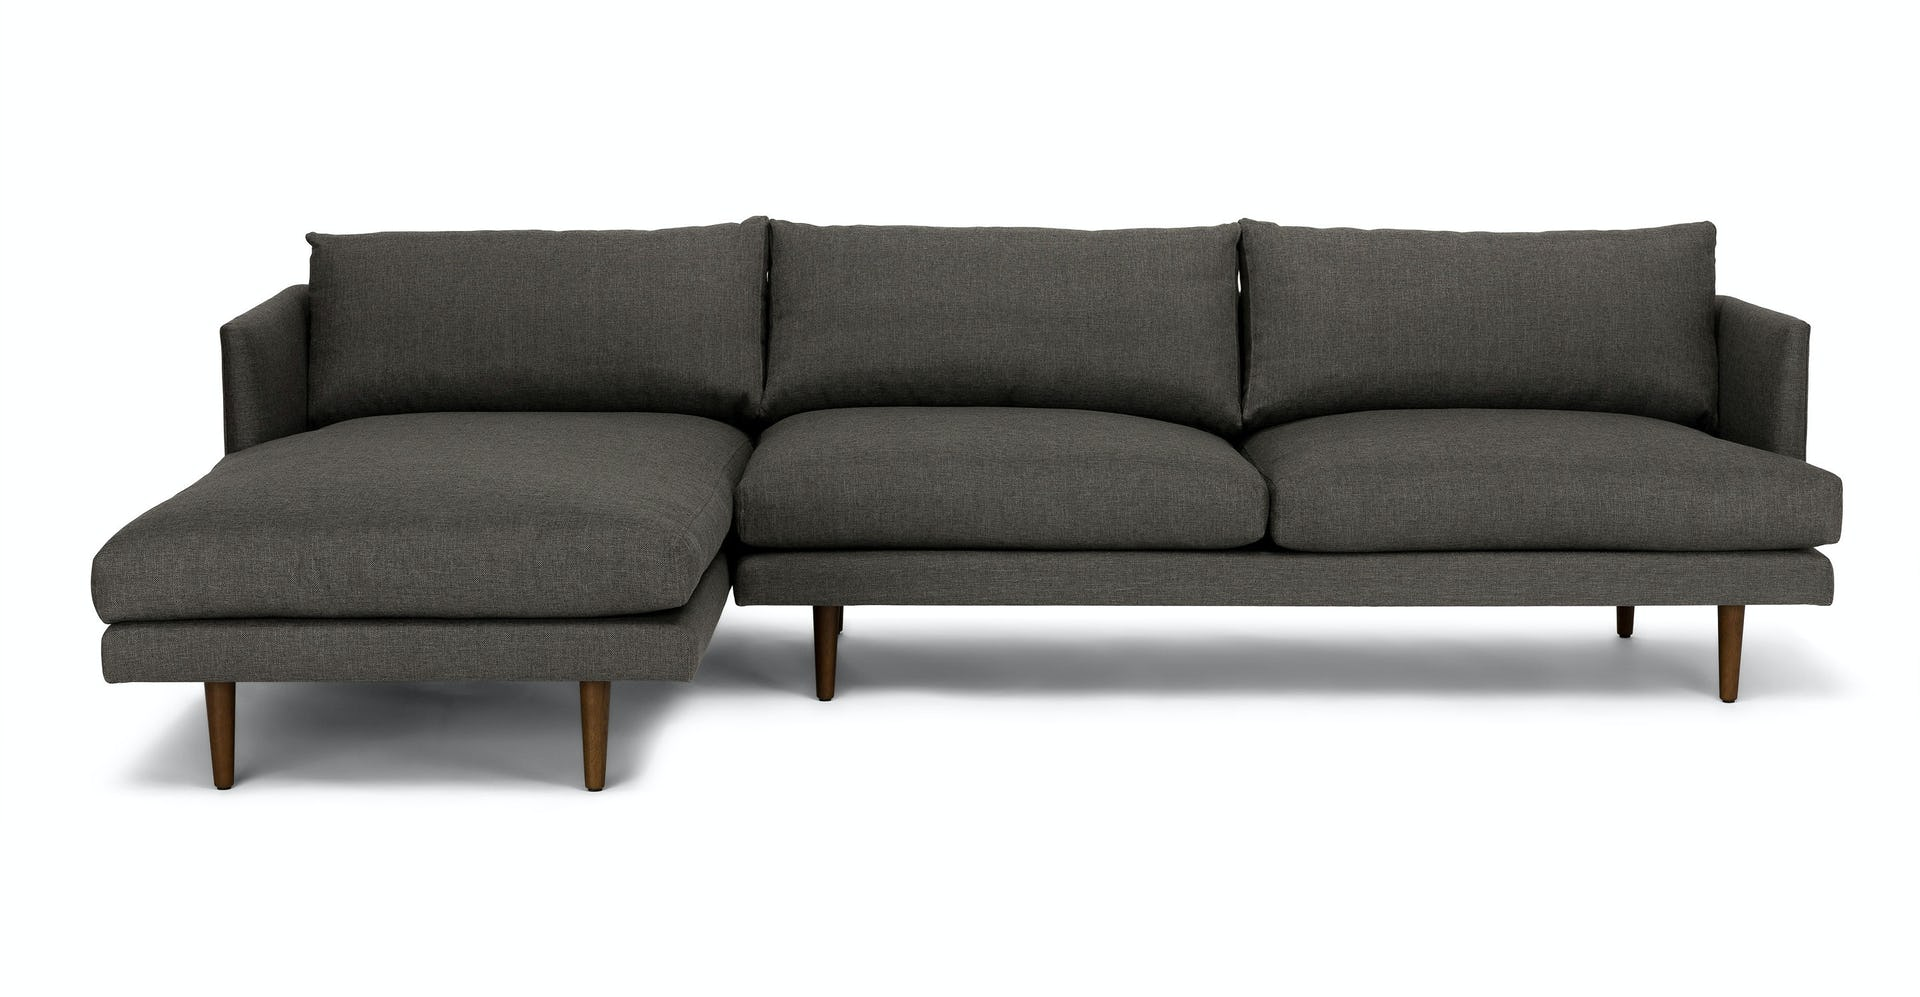 Tremendous Burrard Graphite Gray Left Sectional Sofa Gmtry Best Dining Table And Chair Ideas Images Gmtryco